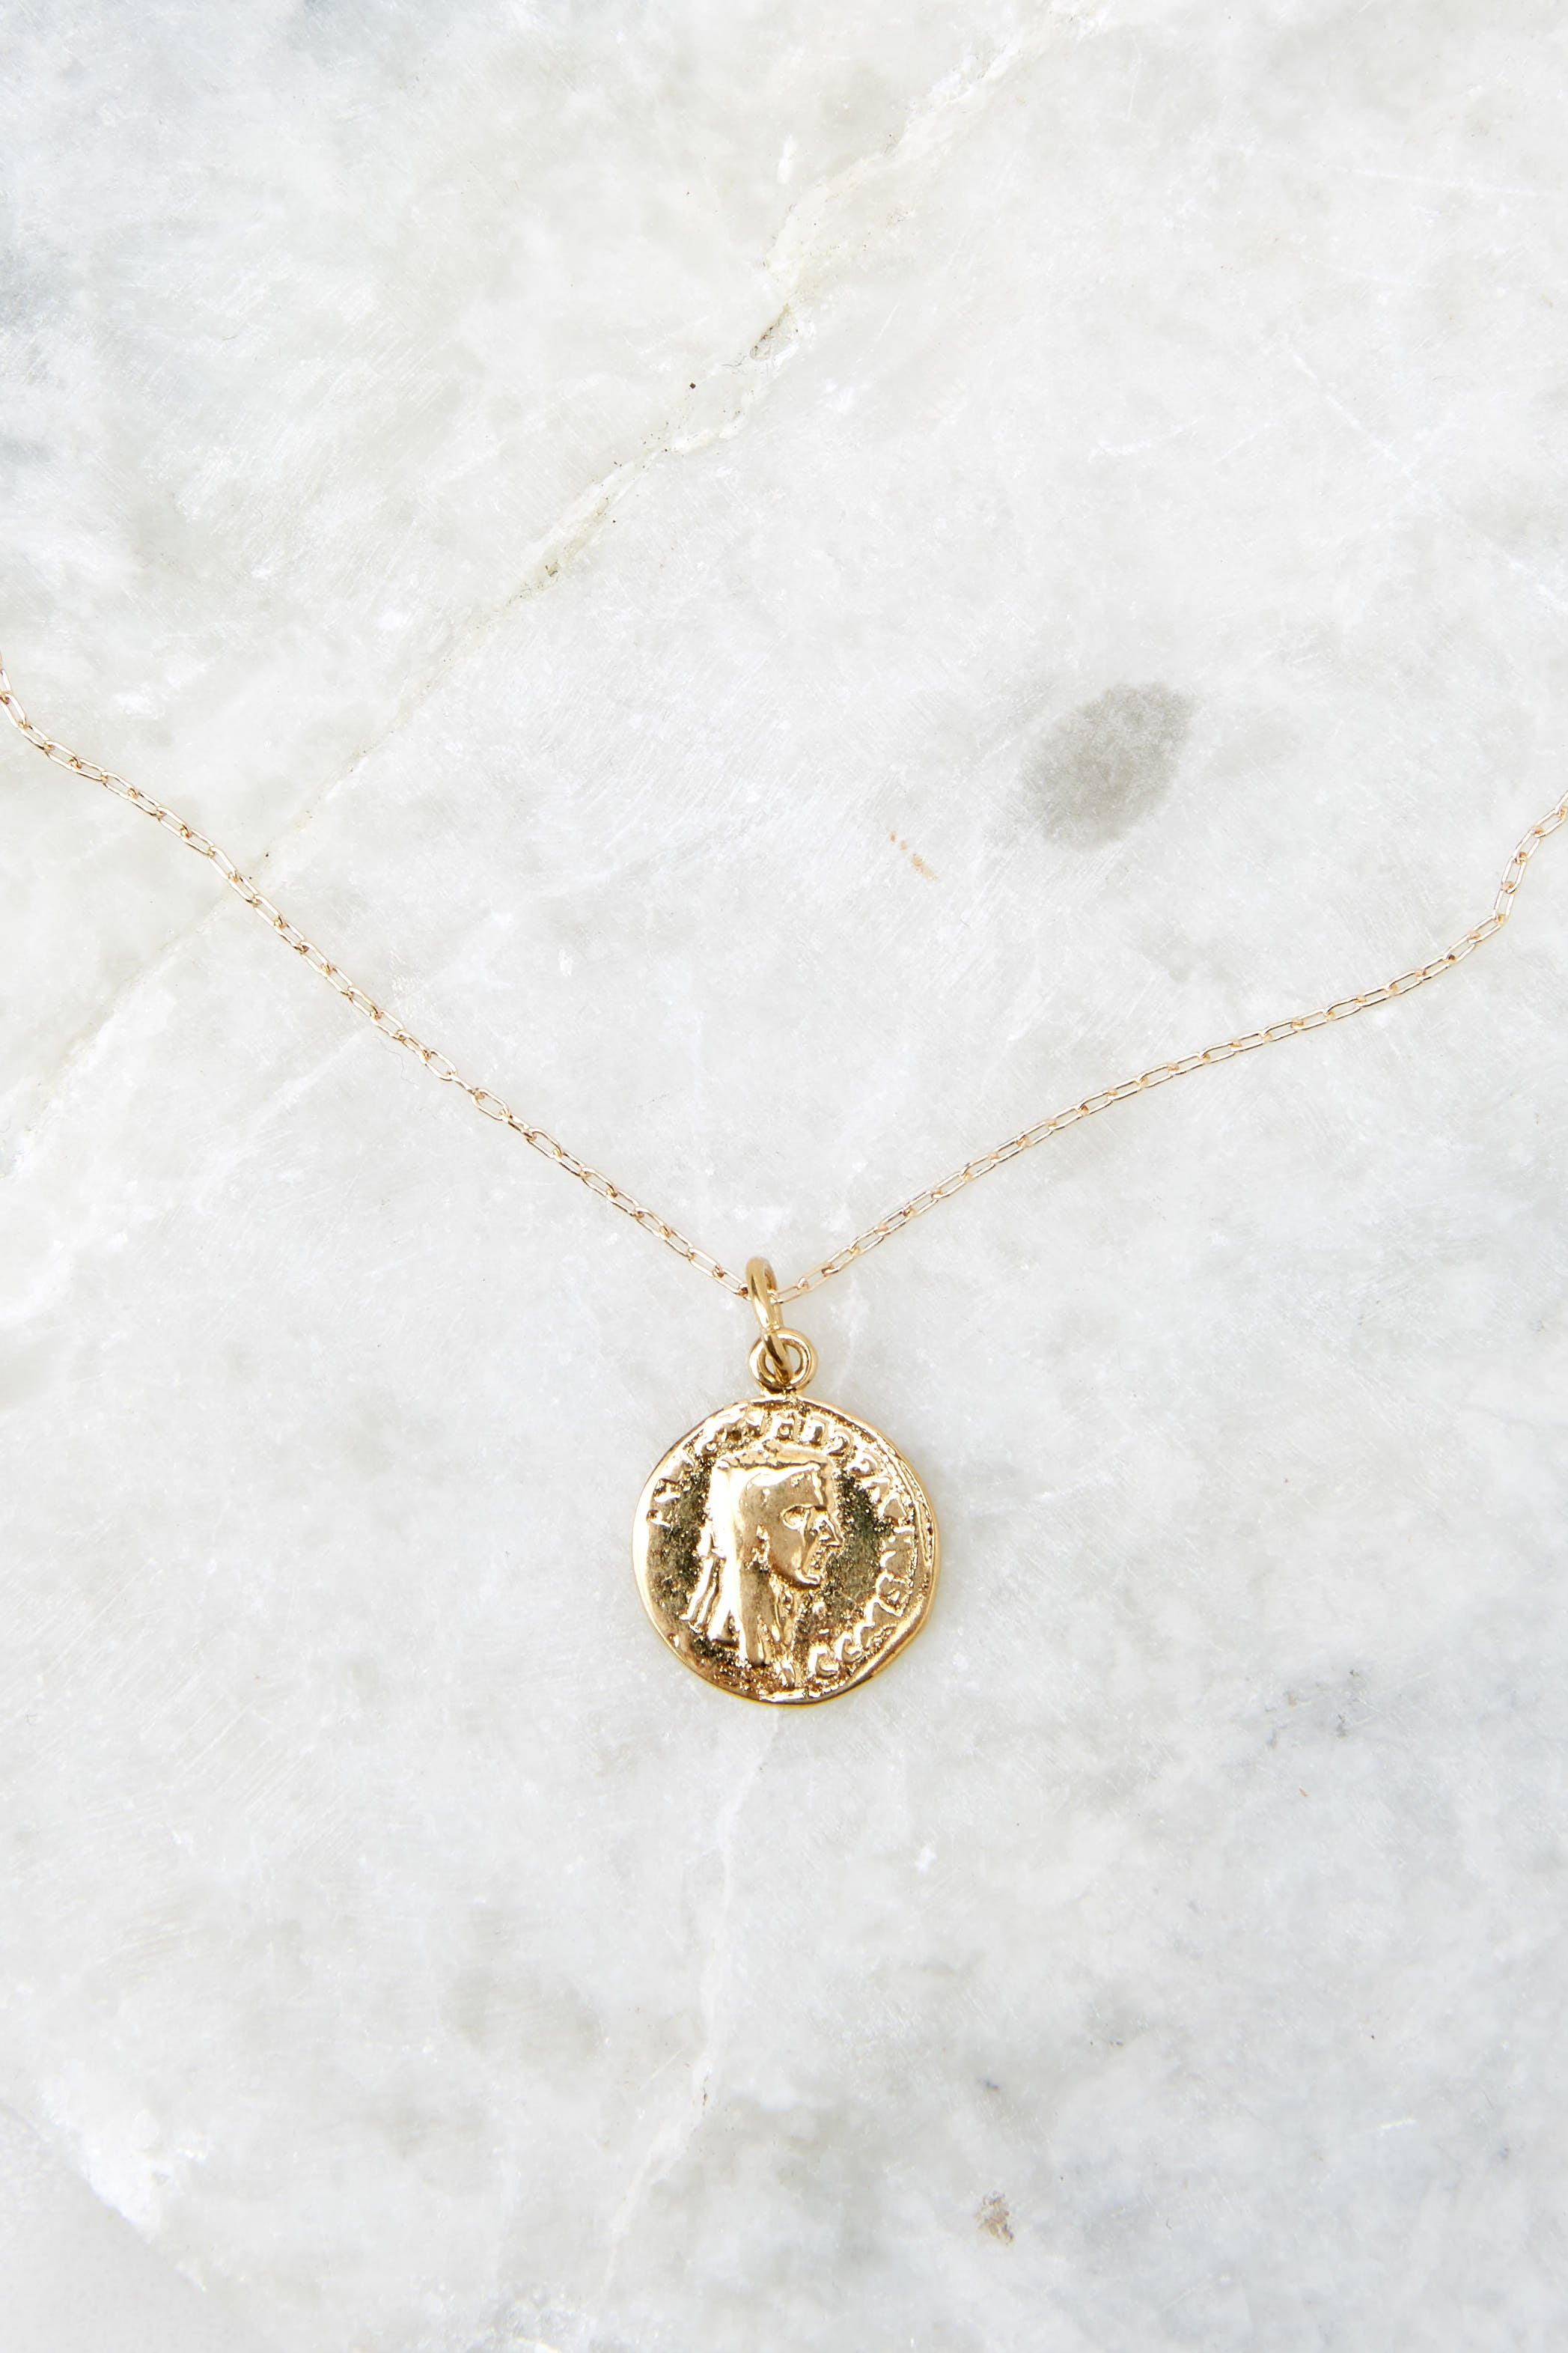 3 French Mini Coin Gold Filled Necklace at reddress.com